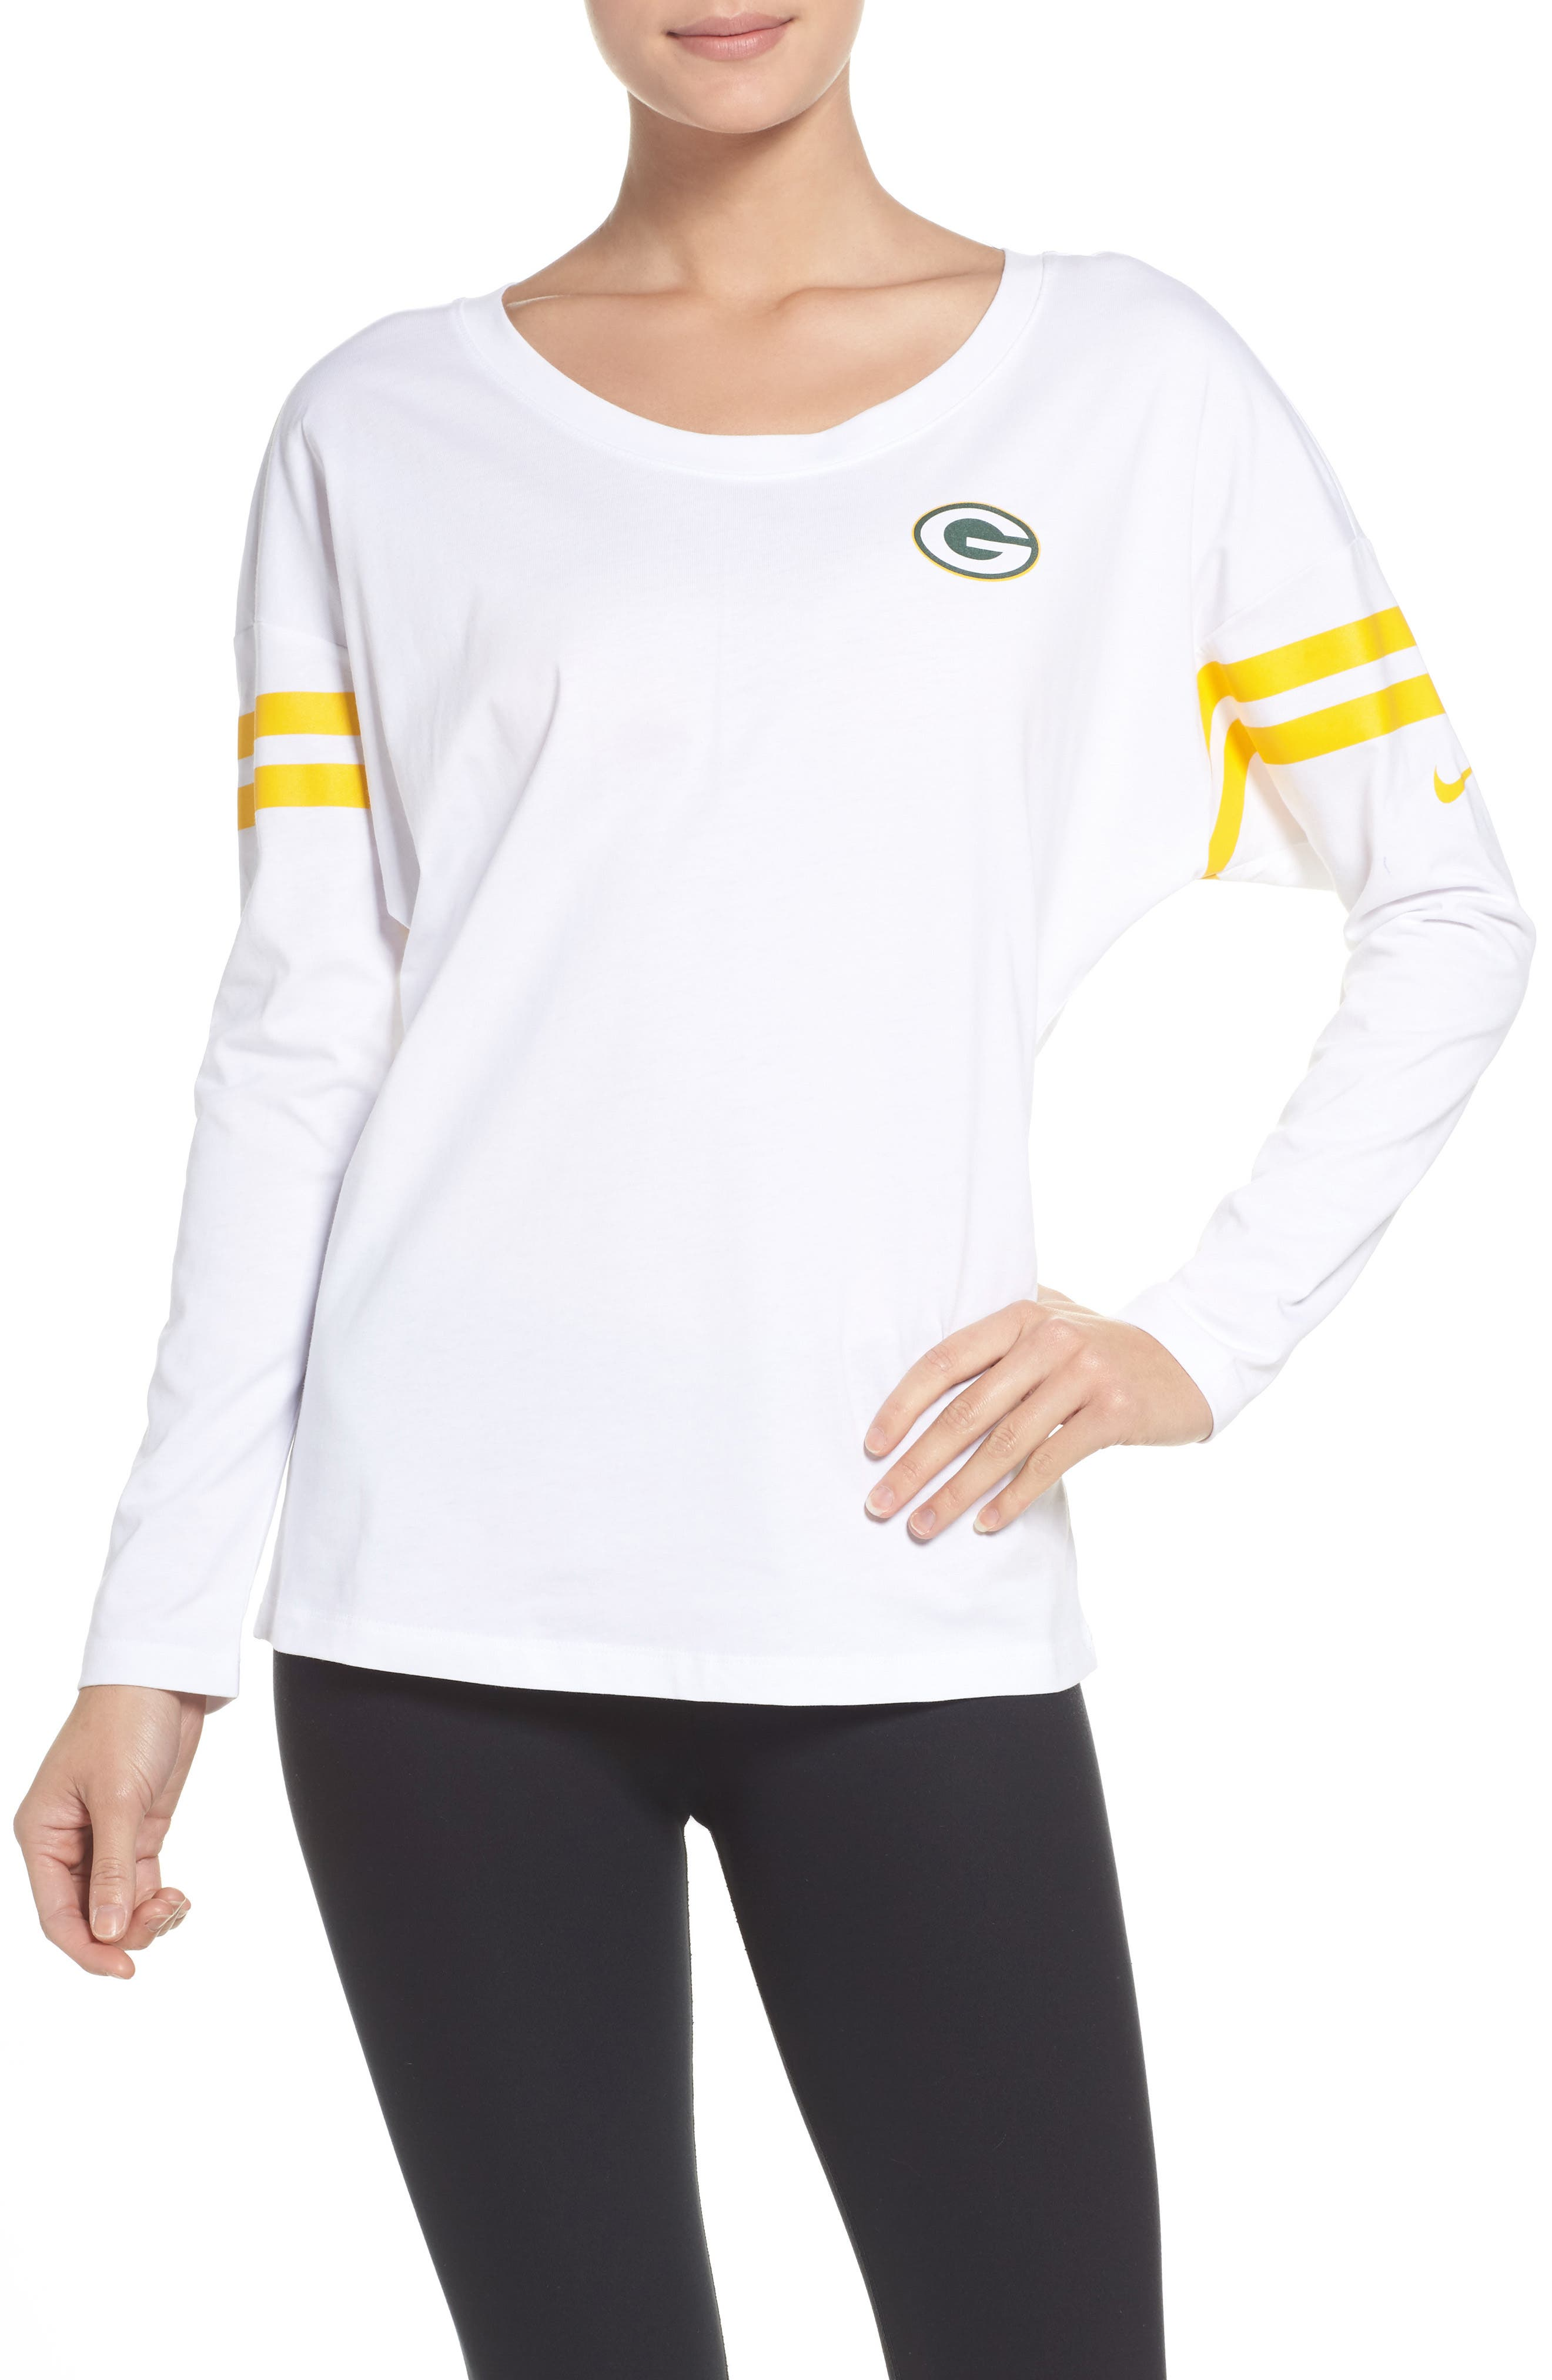 NFL Tailgate Tee,                         Main,                         color, White/ Green Bay